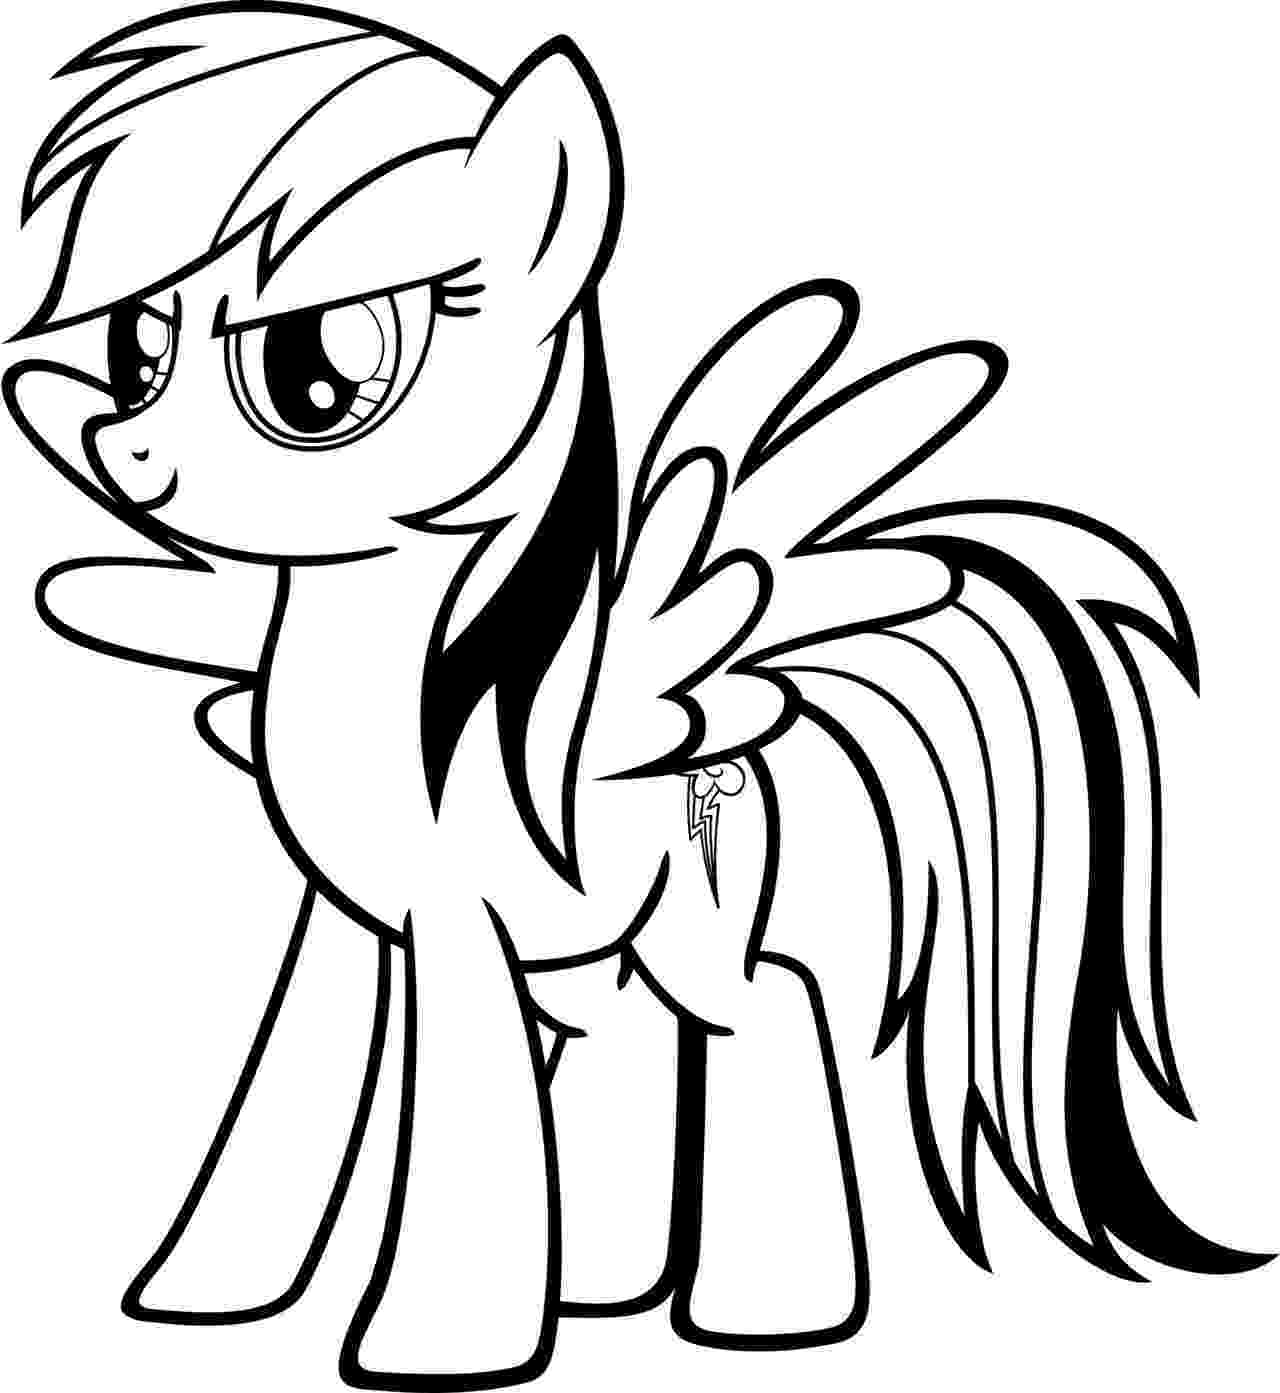 coloring pages rainbow dash rainbow dash coloring pages best coloring pages for kids rainbow dash pages coloring